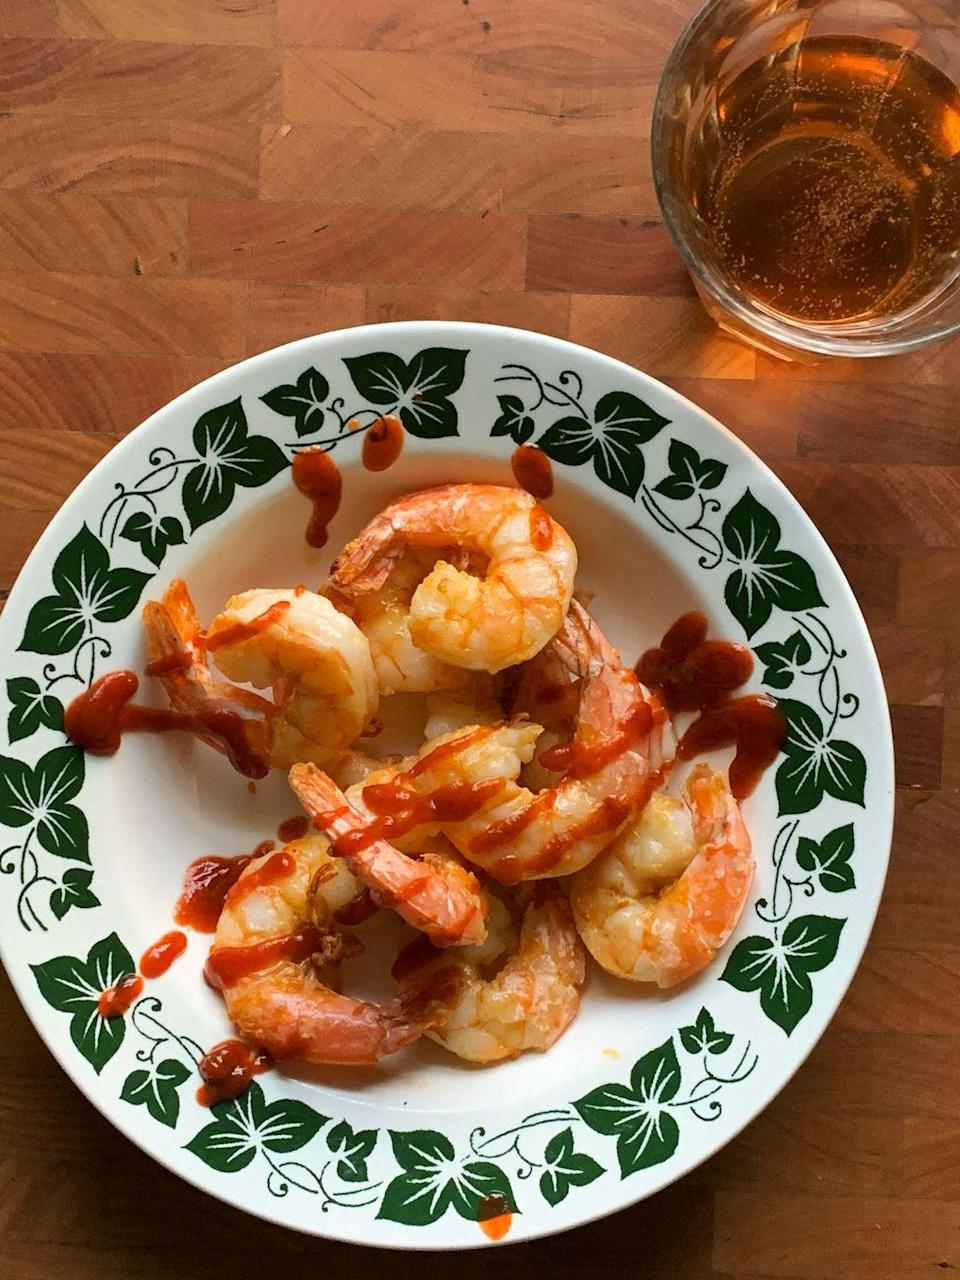 """<p>With an air fryer, these shrimp go from fully frozen to ready-t0-eat in about 25 minutes. They're perfect for healthy last-minute meals, and are great for salads, pasta, or more.</p><p><strong><a href=""""https://www.countryliving.com/food-drinks/a35671696/air-fryer-shrimp/"""" rel=""""nofollow noopener"""" target=""""_blank"""" data-ylk=""""slk:Get the recipe"""" class=""""link rapid-noclick-resp"""">Get the recipe</a>.</strong> </p>"""